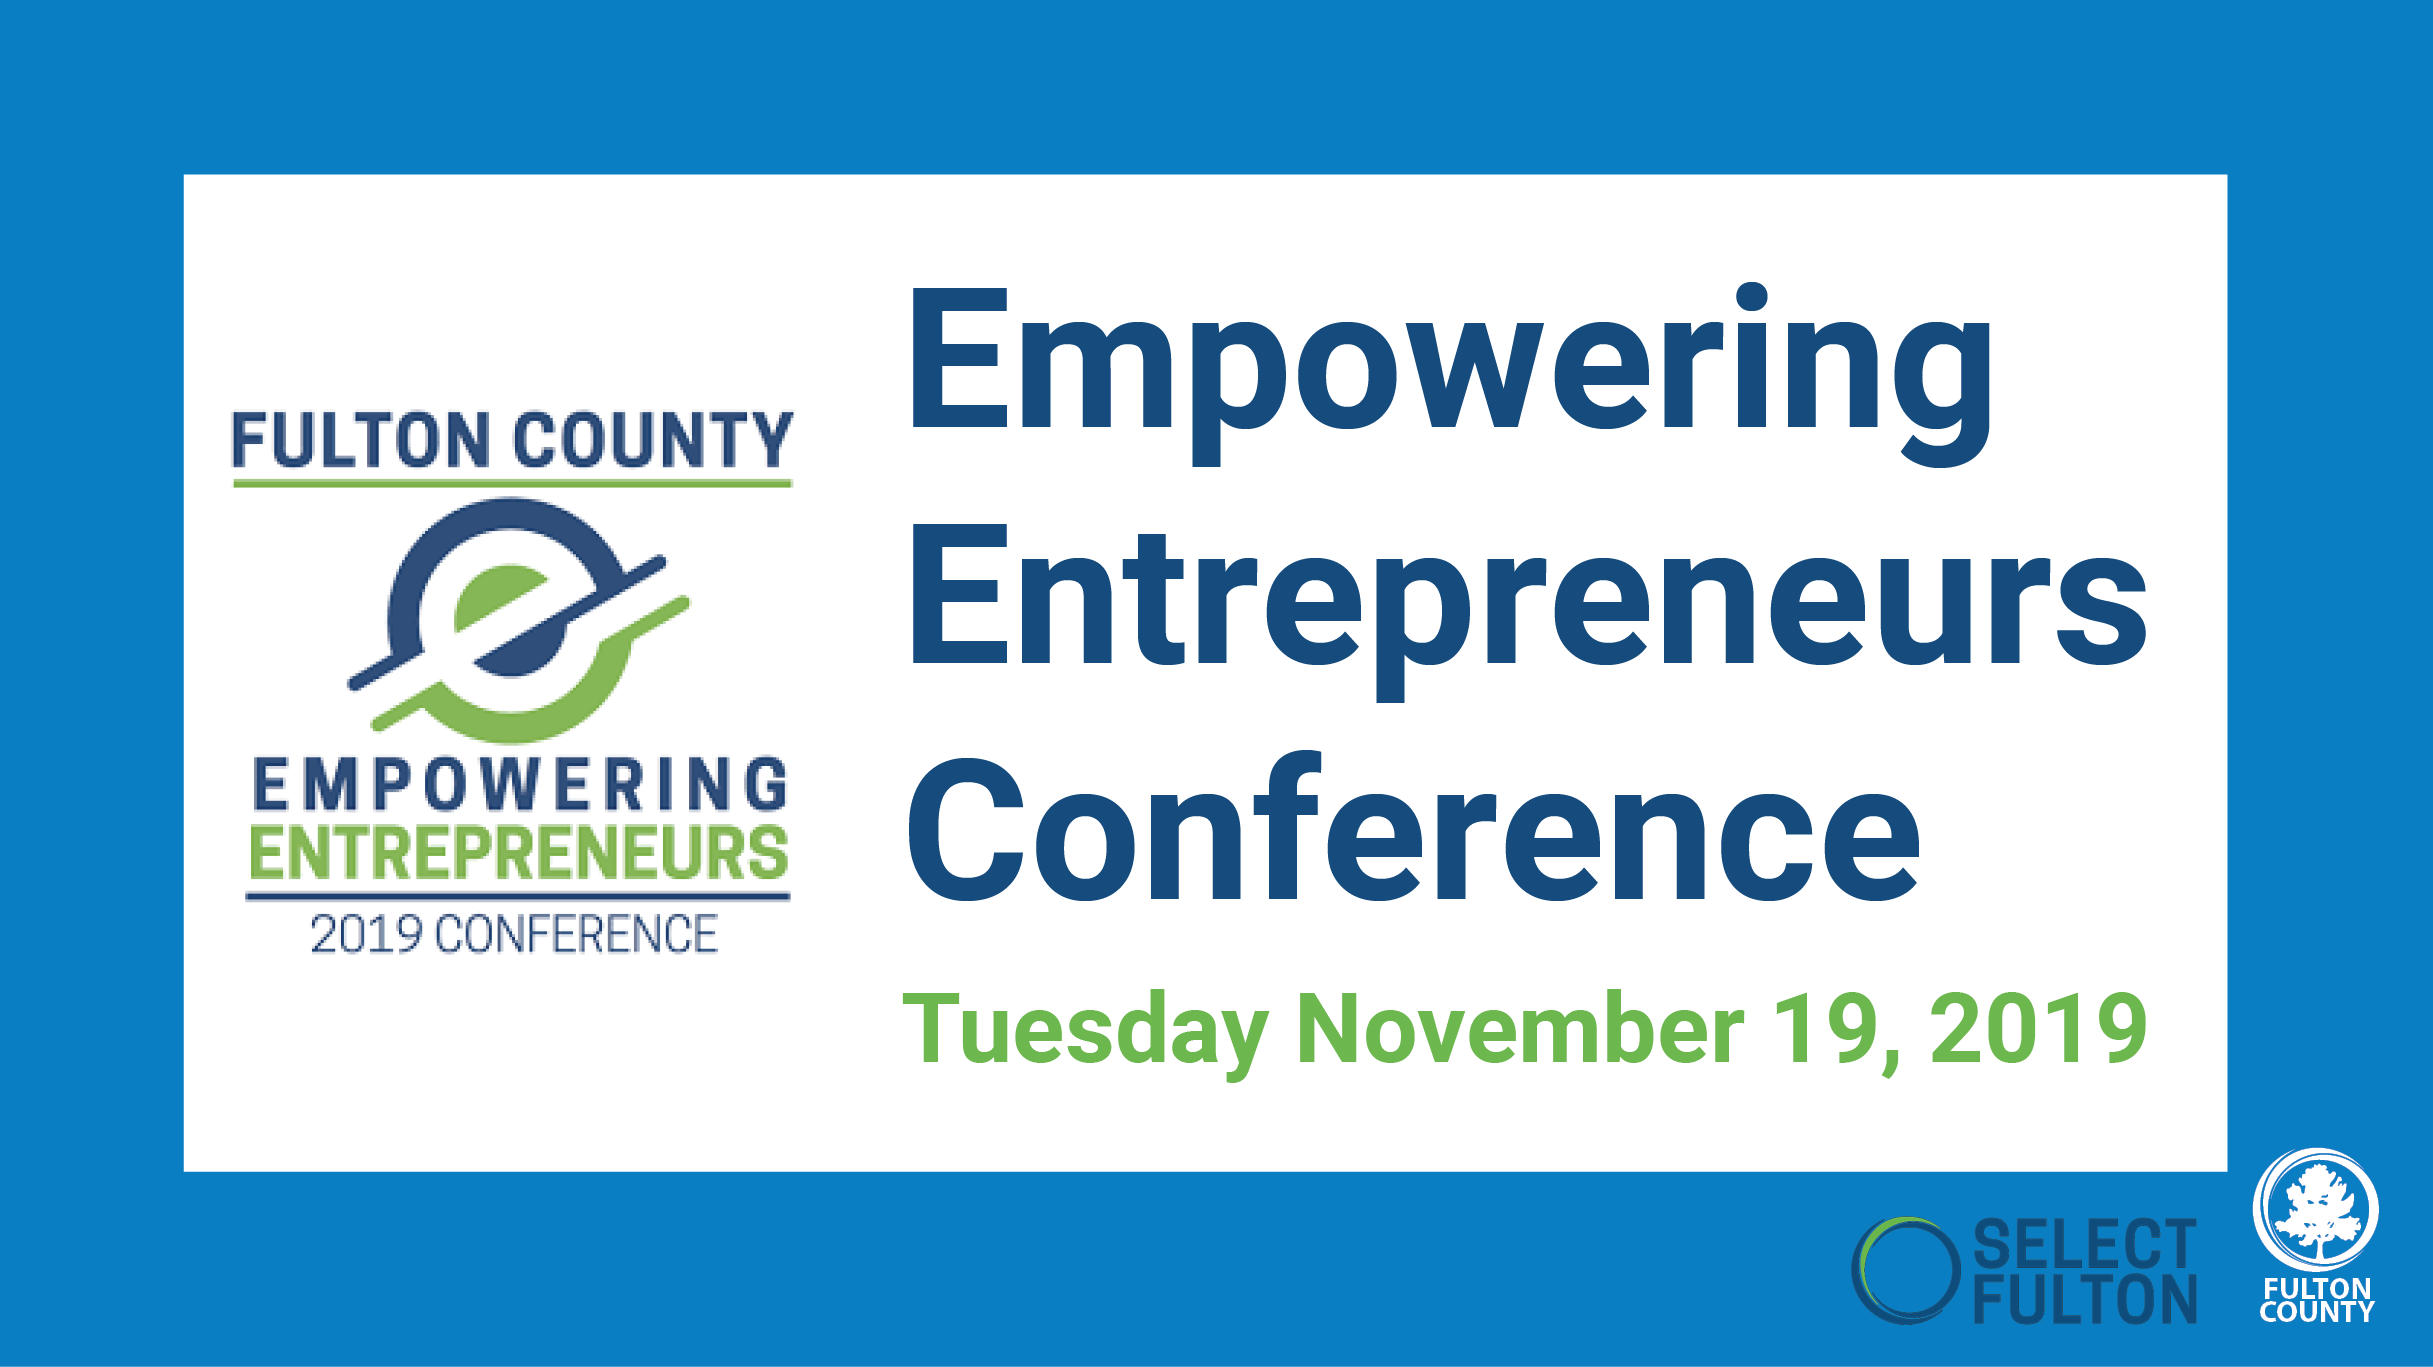 Empowering entrepreneurs conference graphic november 19